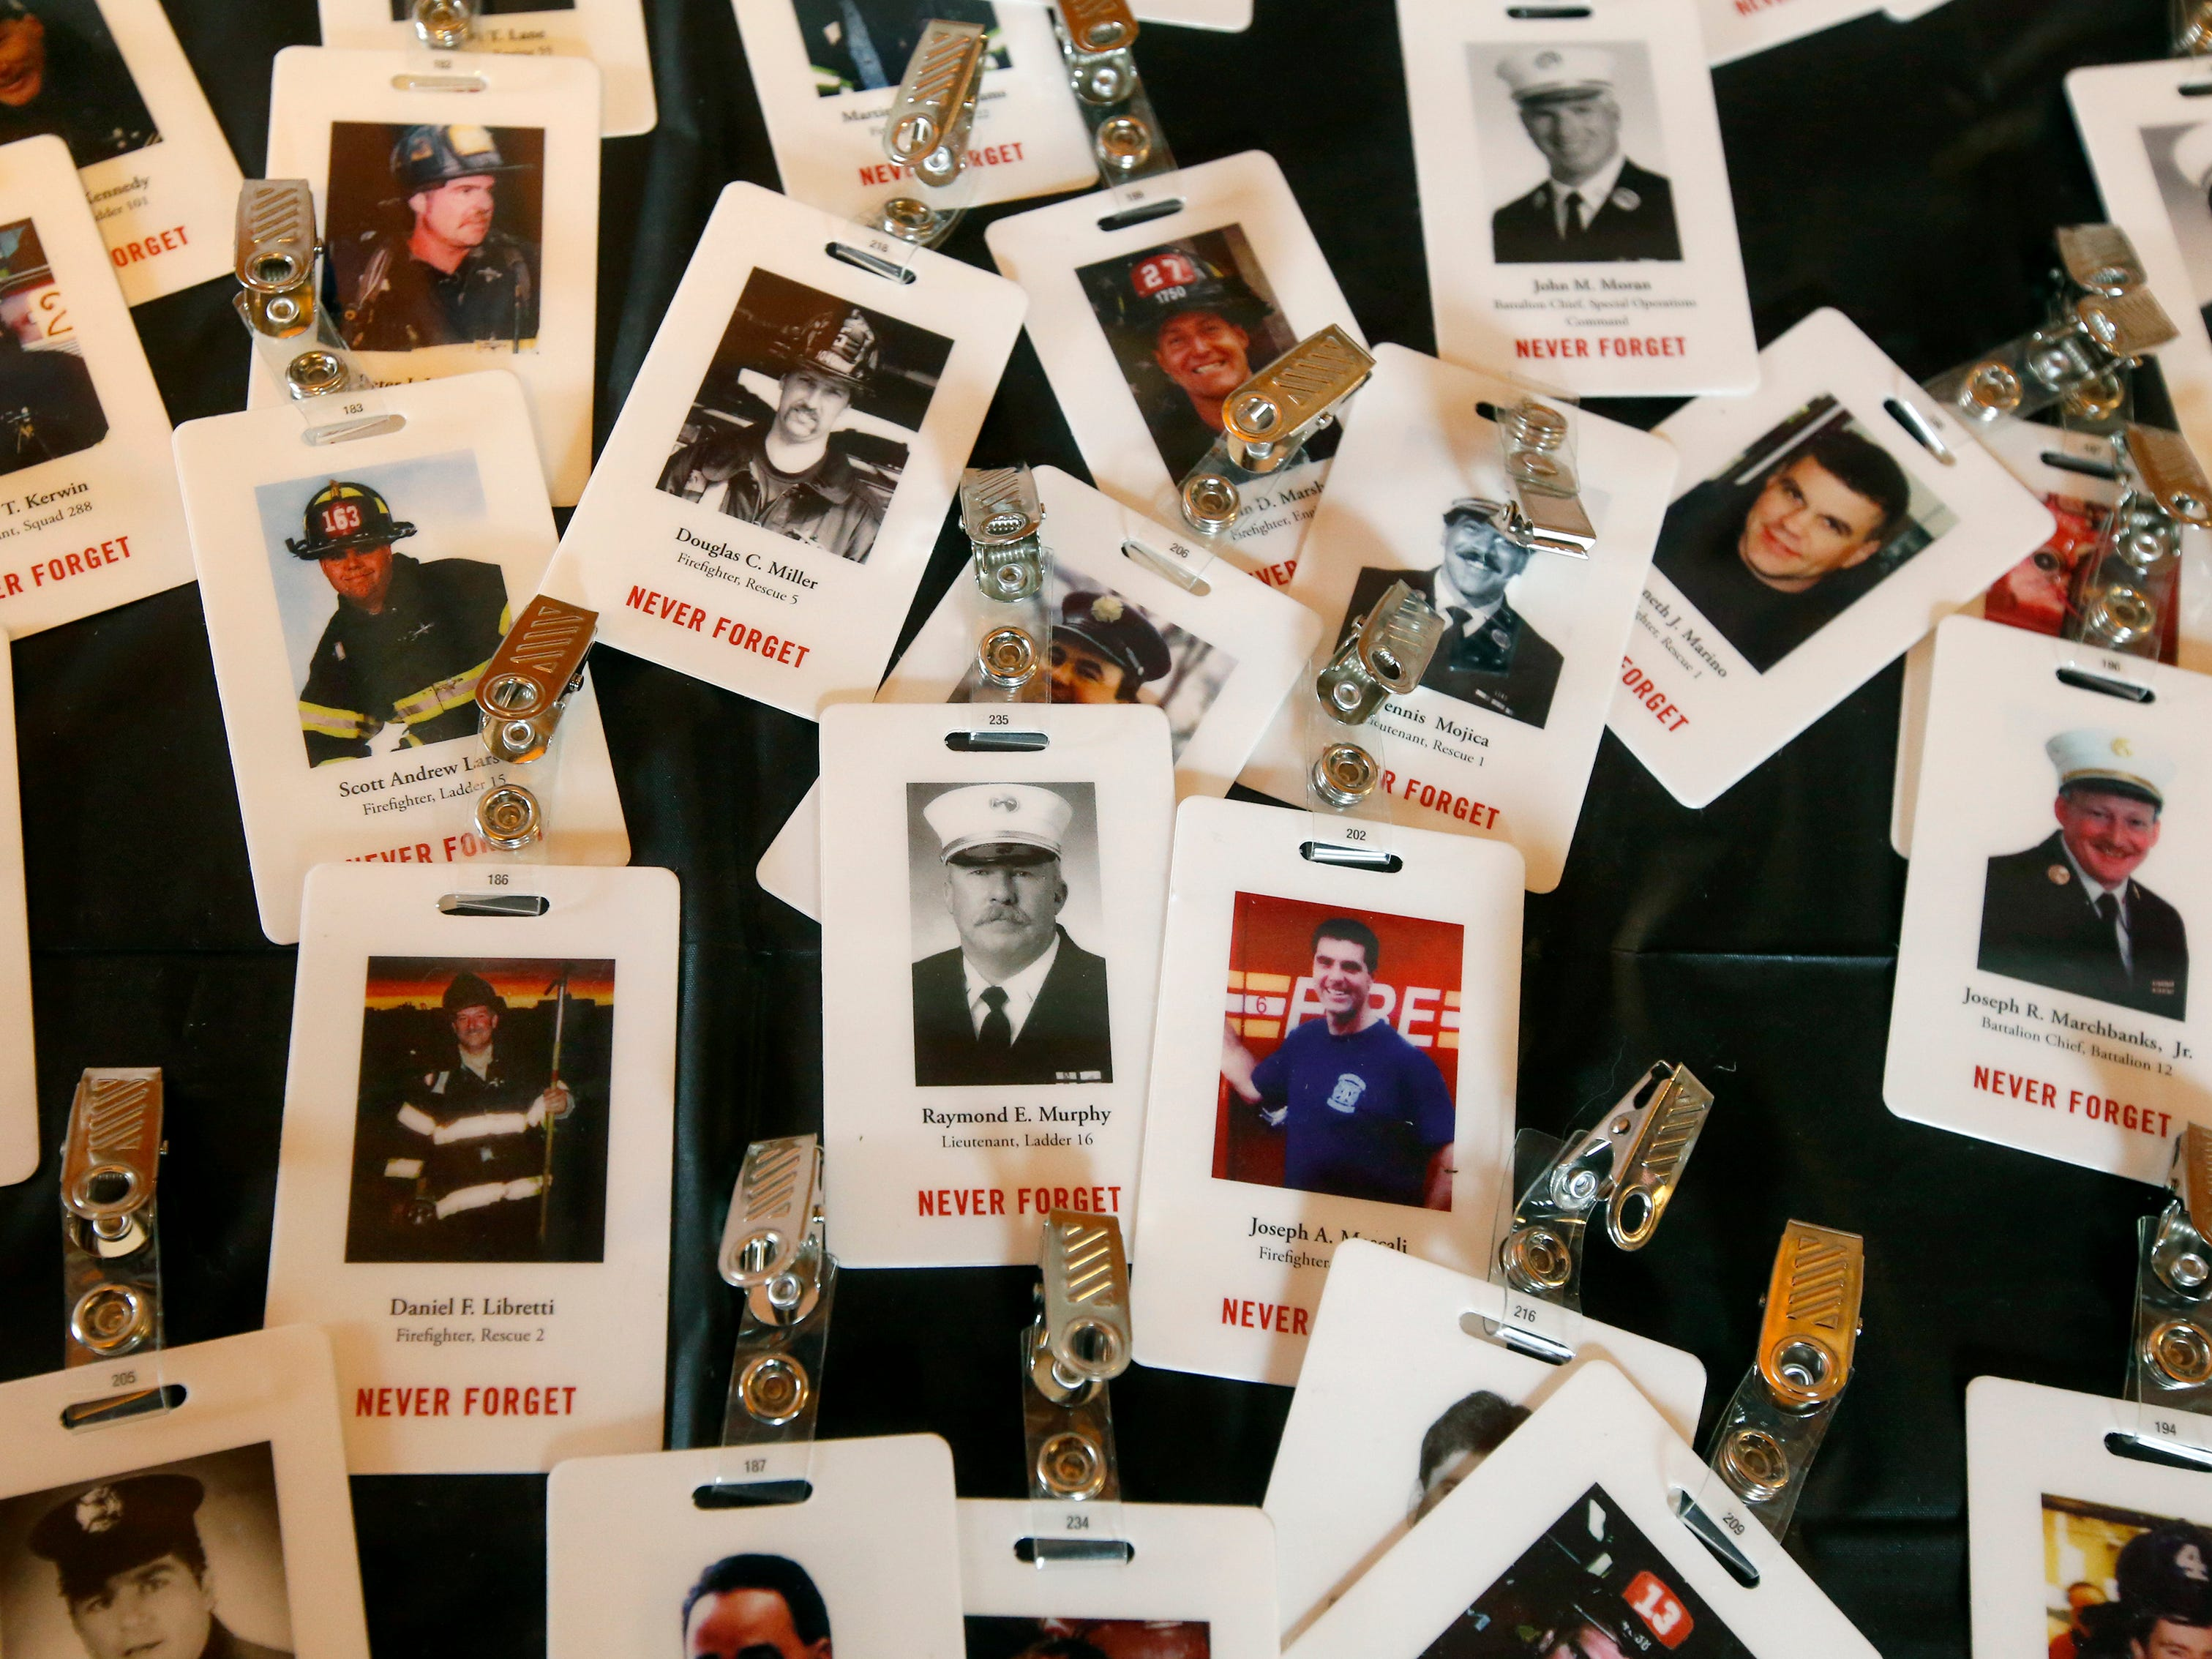 Tags with the names and photos of all the deceased firefighters from the Sept. 11, 2001, terrorist attacks, during the September 11th remembrance service at the Brockport Fire Department, Station 4.